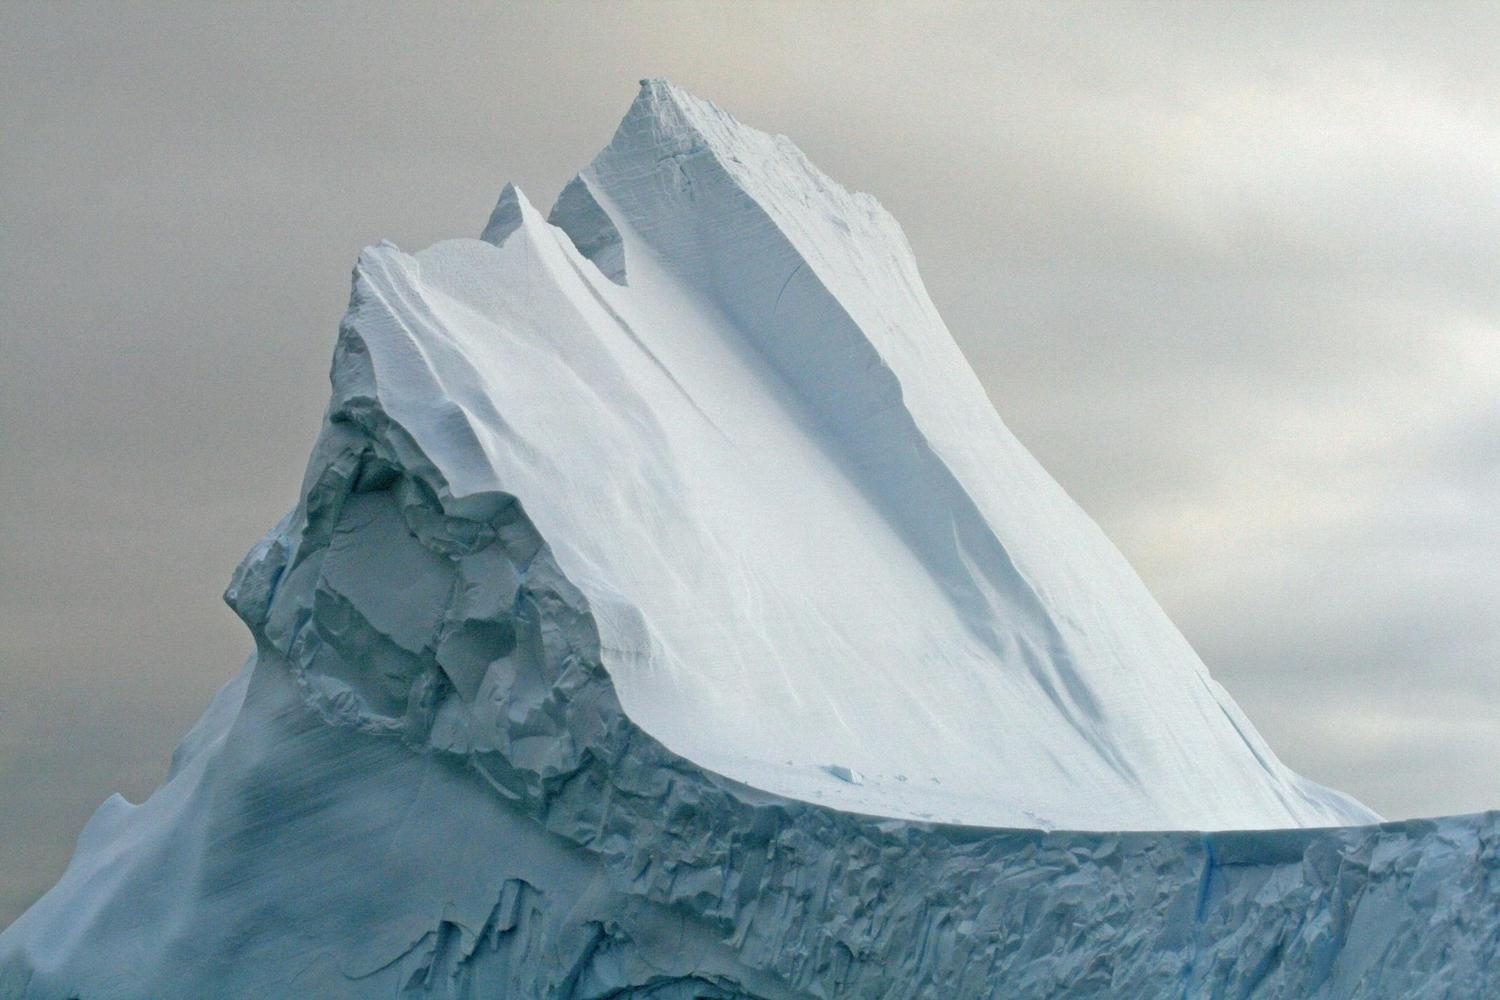 A massive iceberg on the Drake Passage on the way to Antarctica